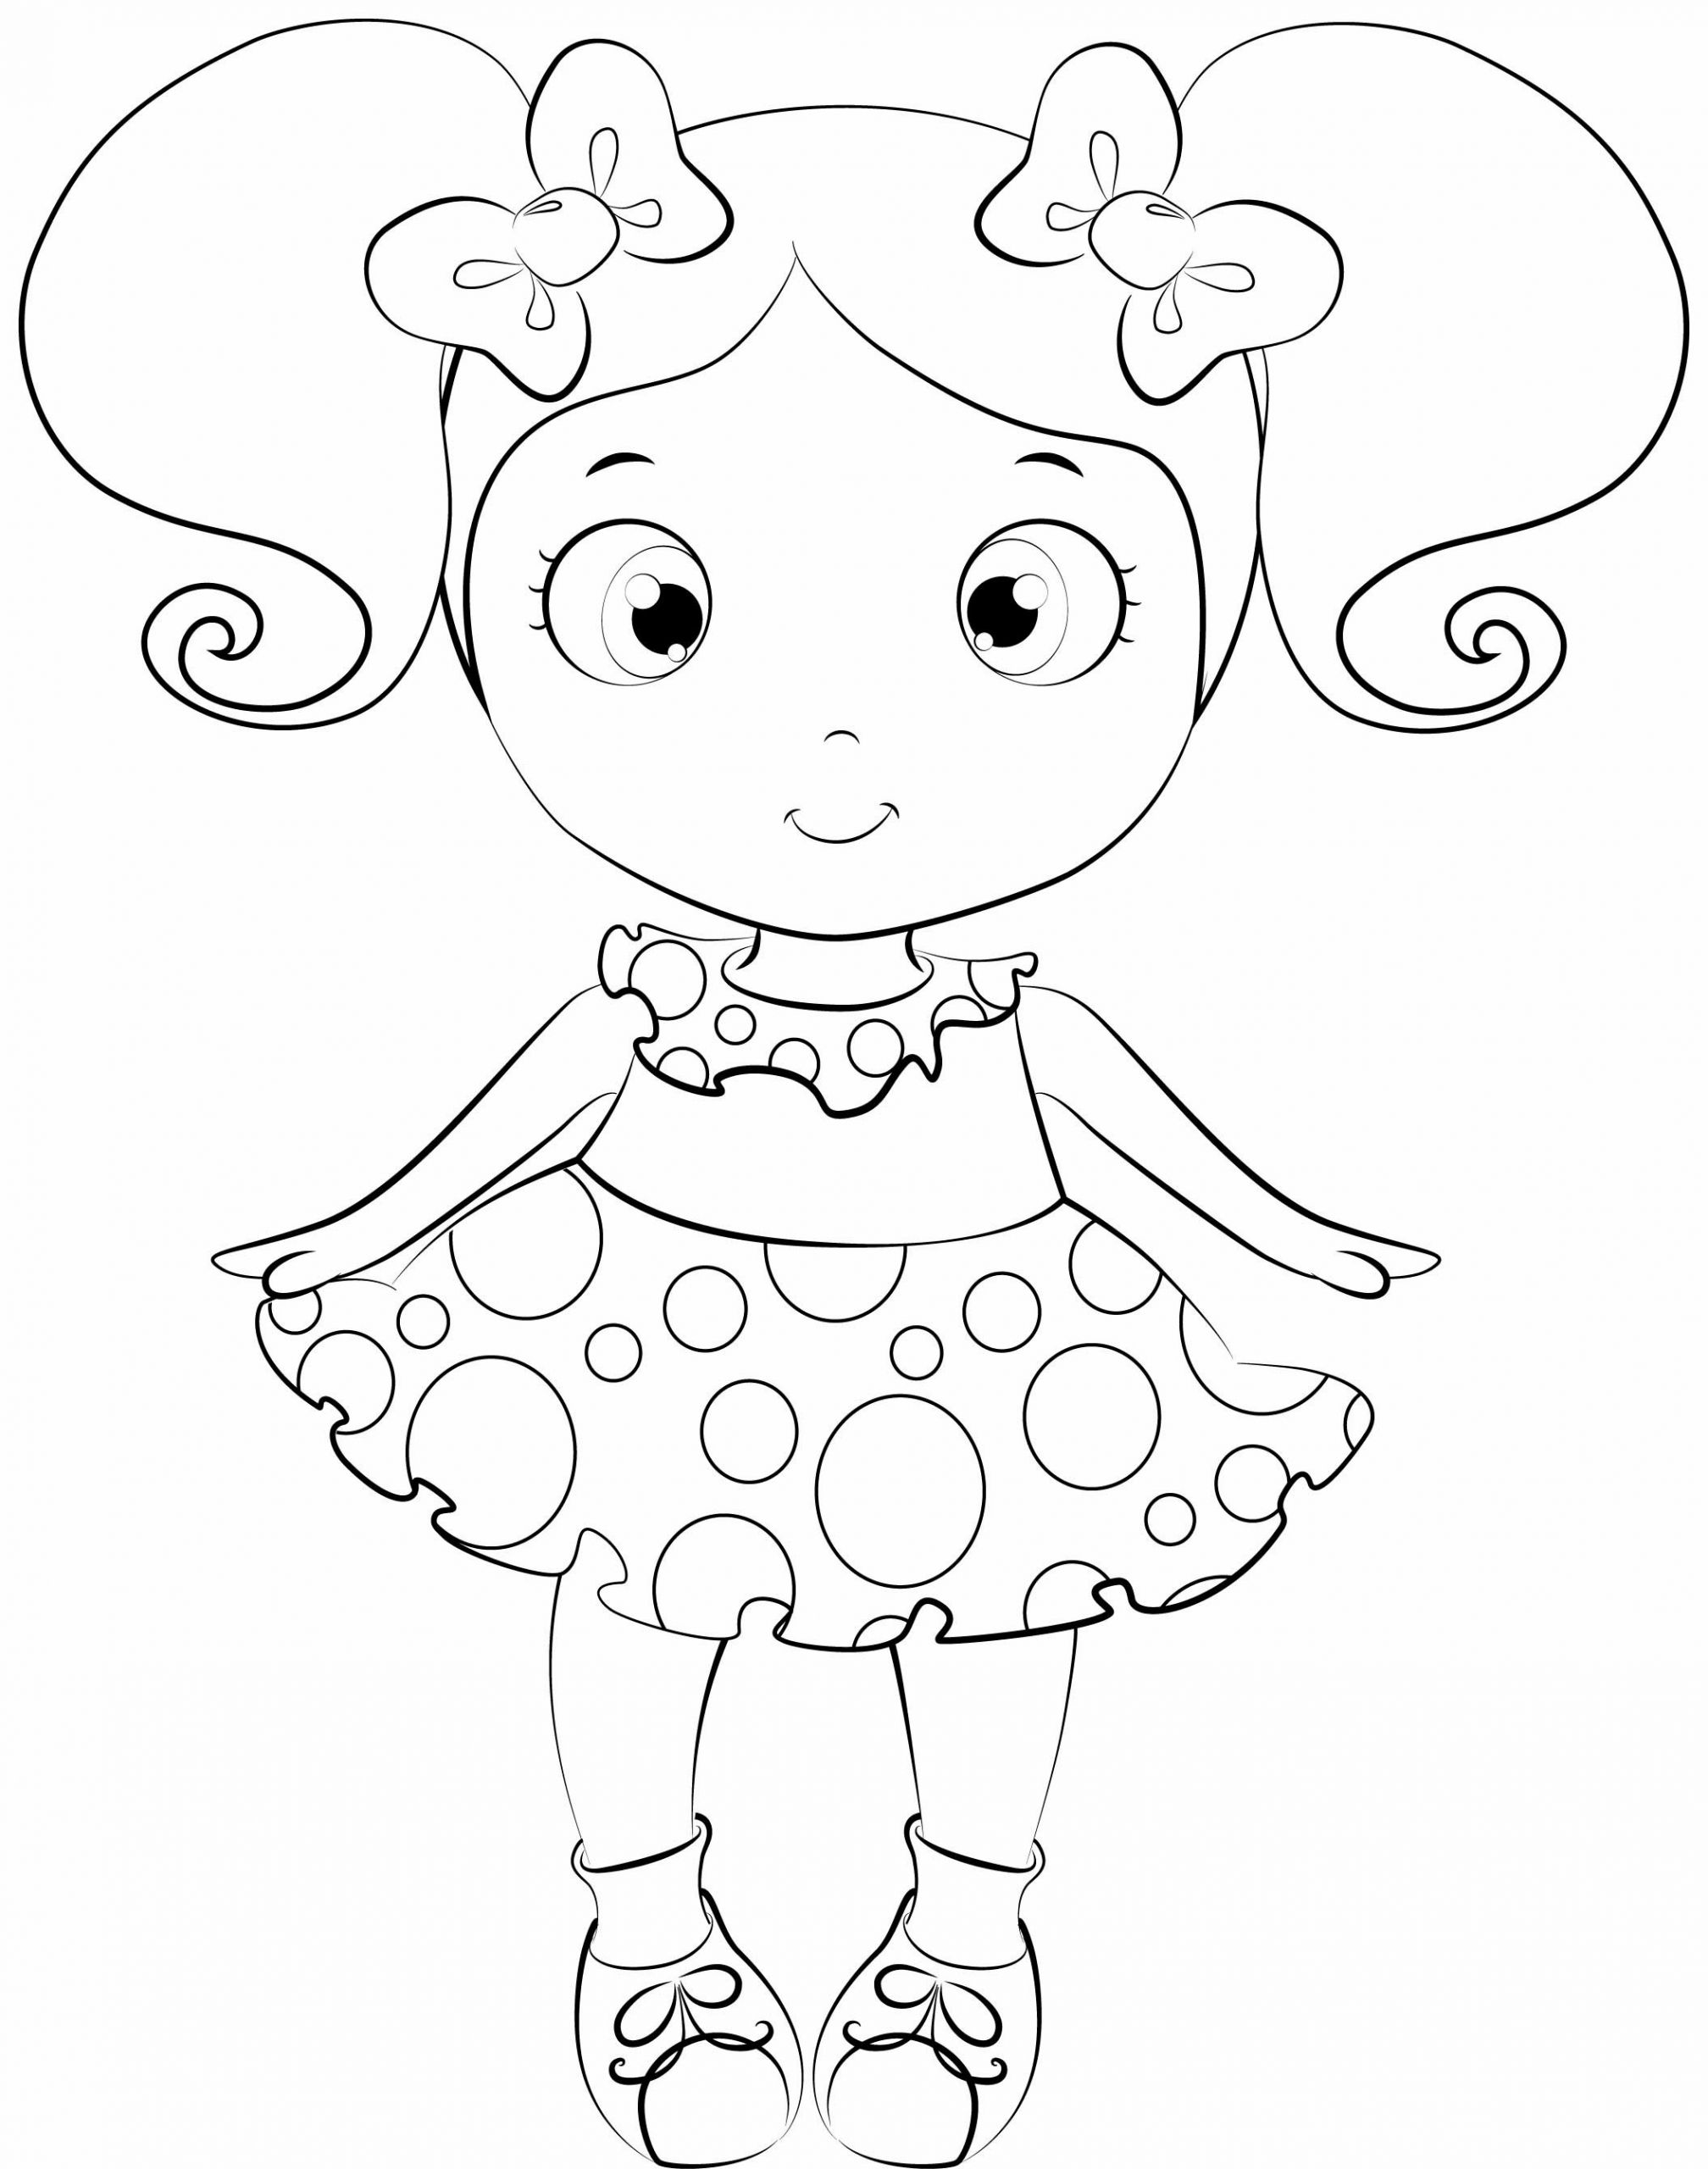 color alive coloring pages baby alive coloring pages coloring pages pages alive coloring color